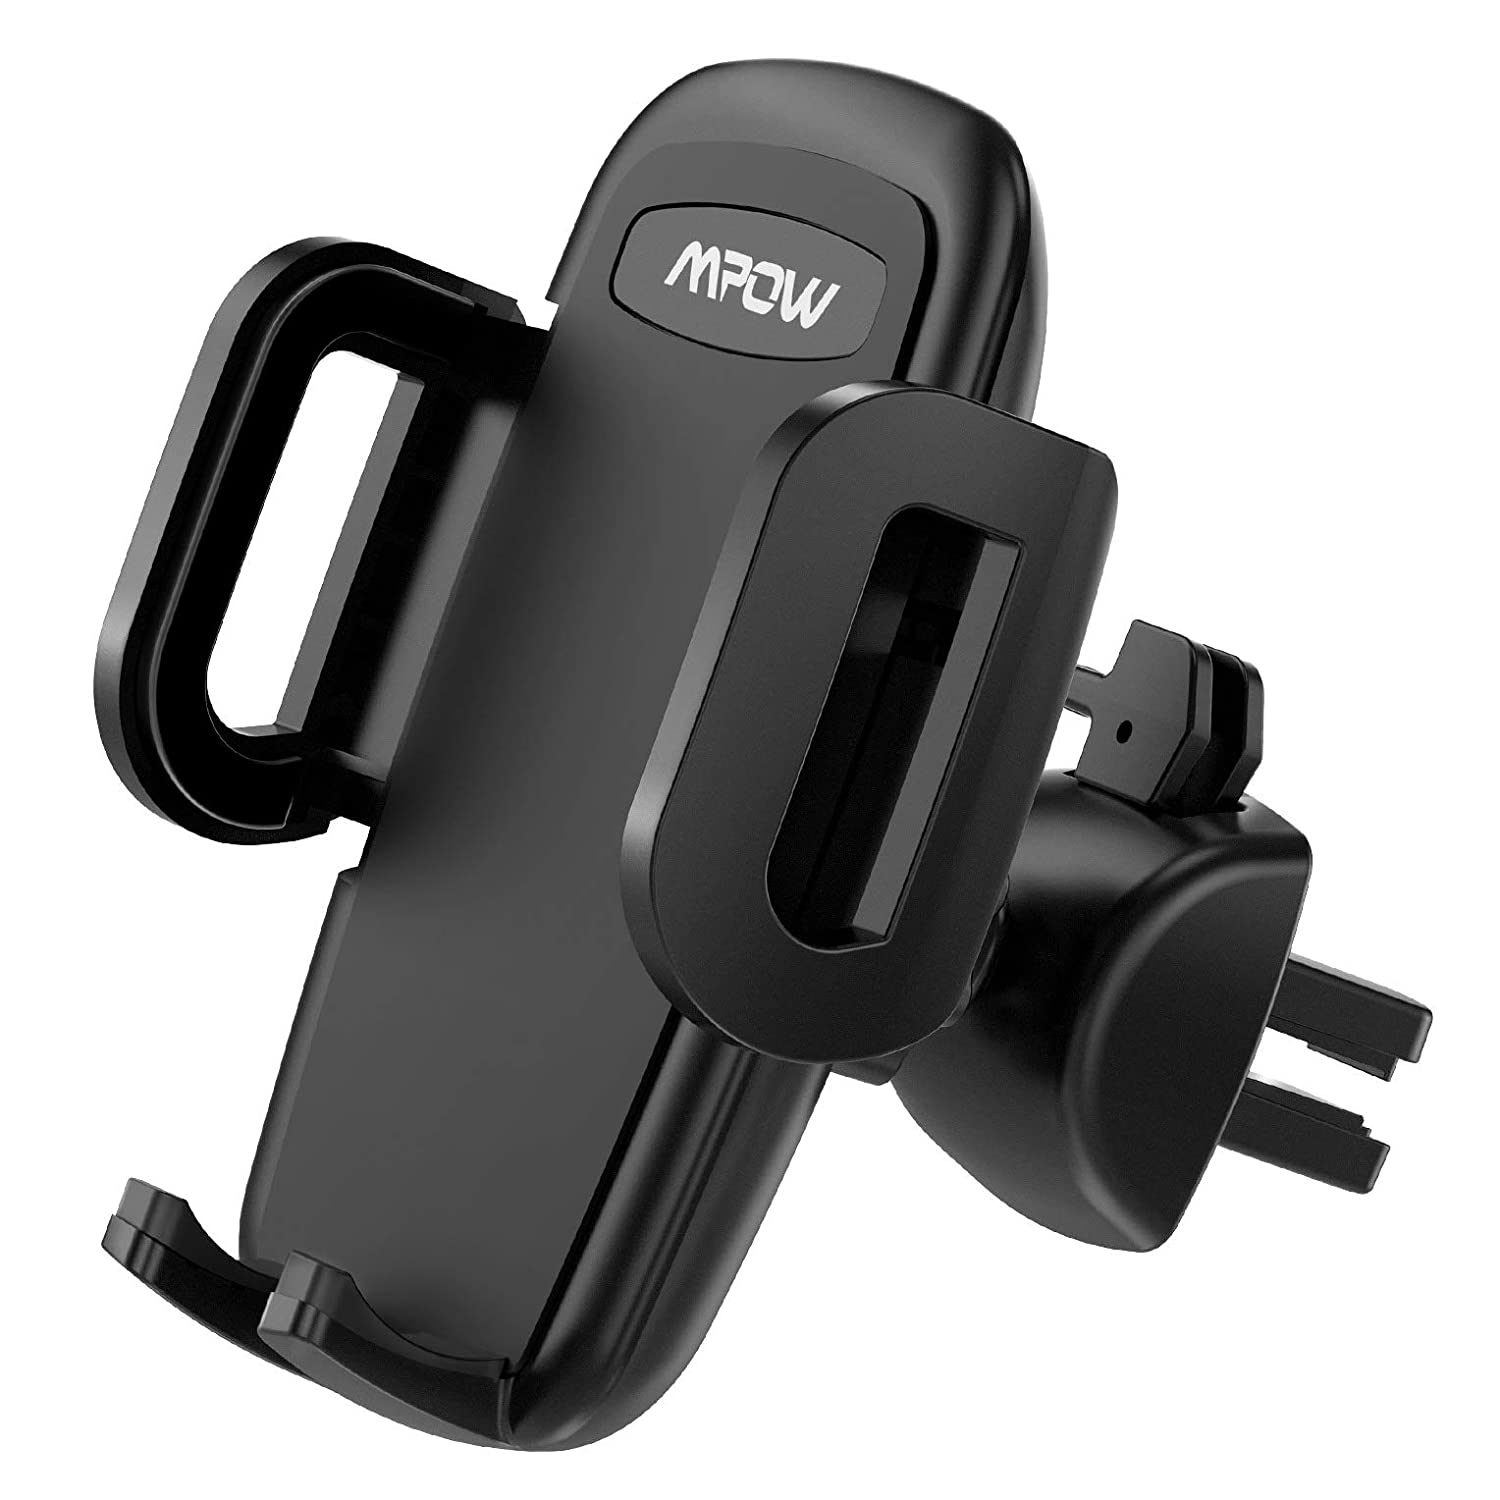 Mpow Upgraded Car Phone Mount 3-Level Adjustable Air Vent Car Phone Holder Compatible with iPhone 11 Pro XS Max XS XR X 8 7 6Plus Samsung Galaxy S10 S9 S8 S7 S6 Google Pixel LG Nexus and More